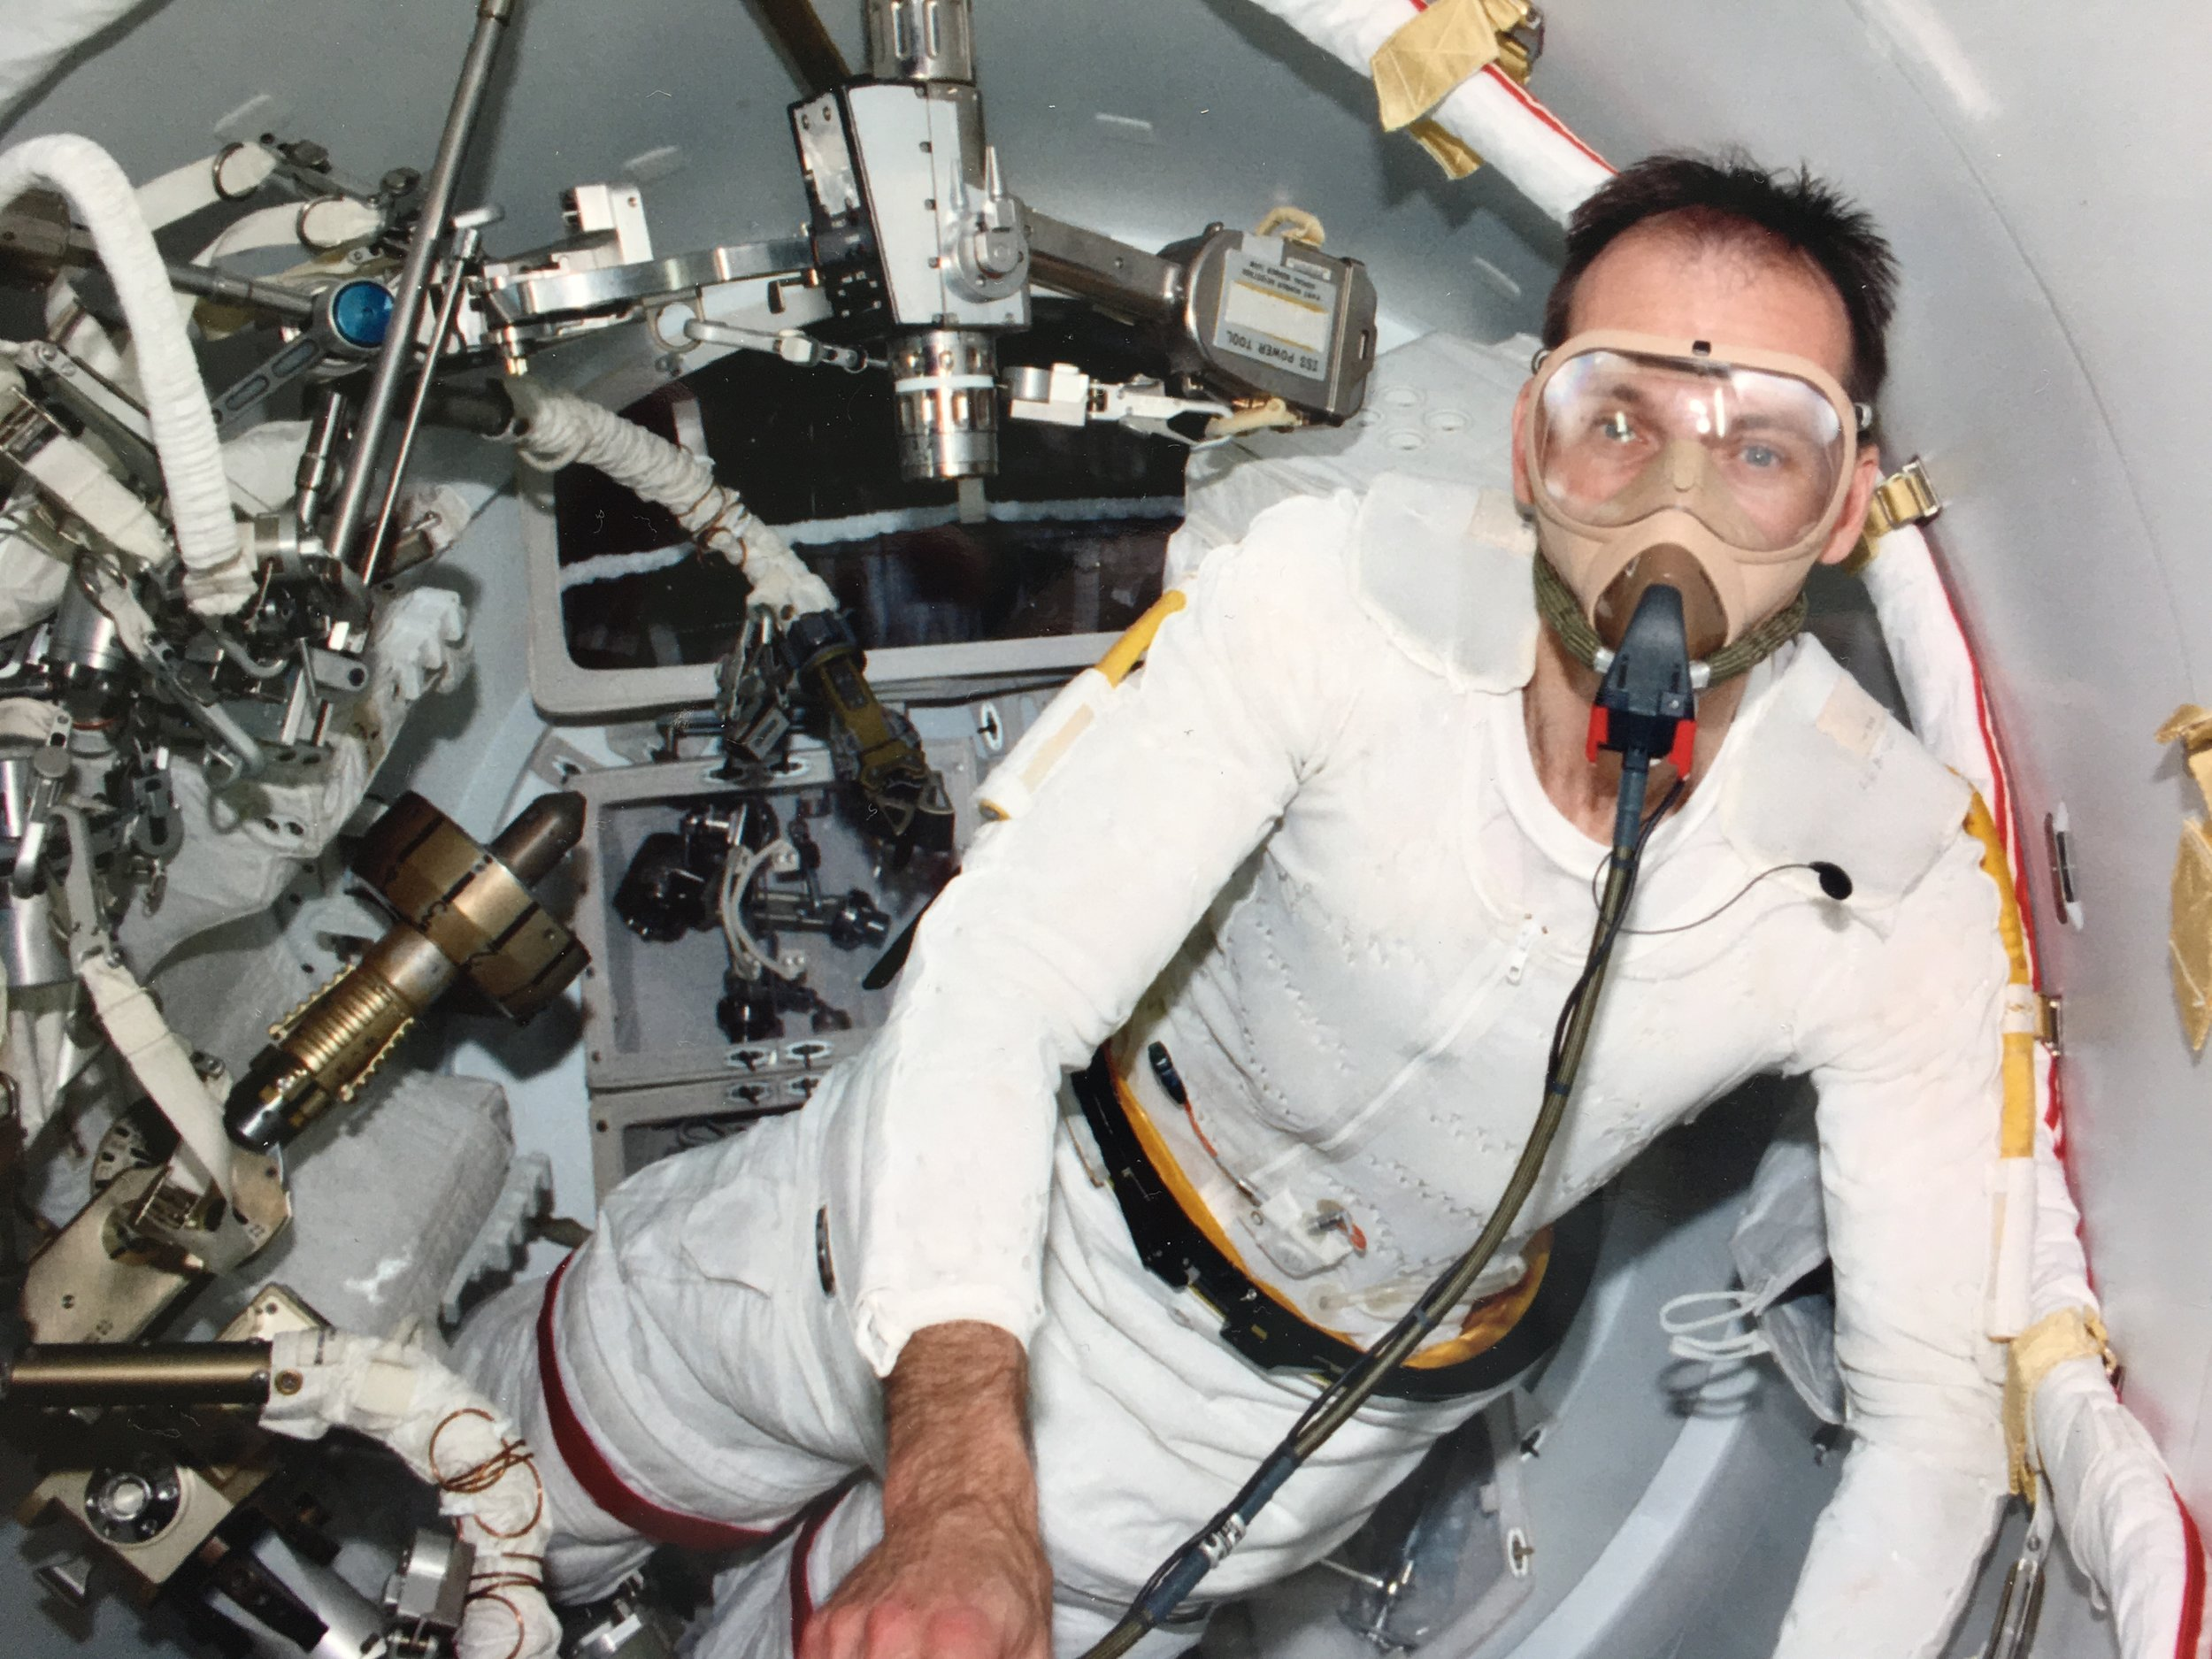 Breathing pure oxygen before spacewalk on space station